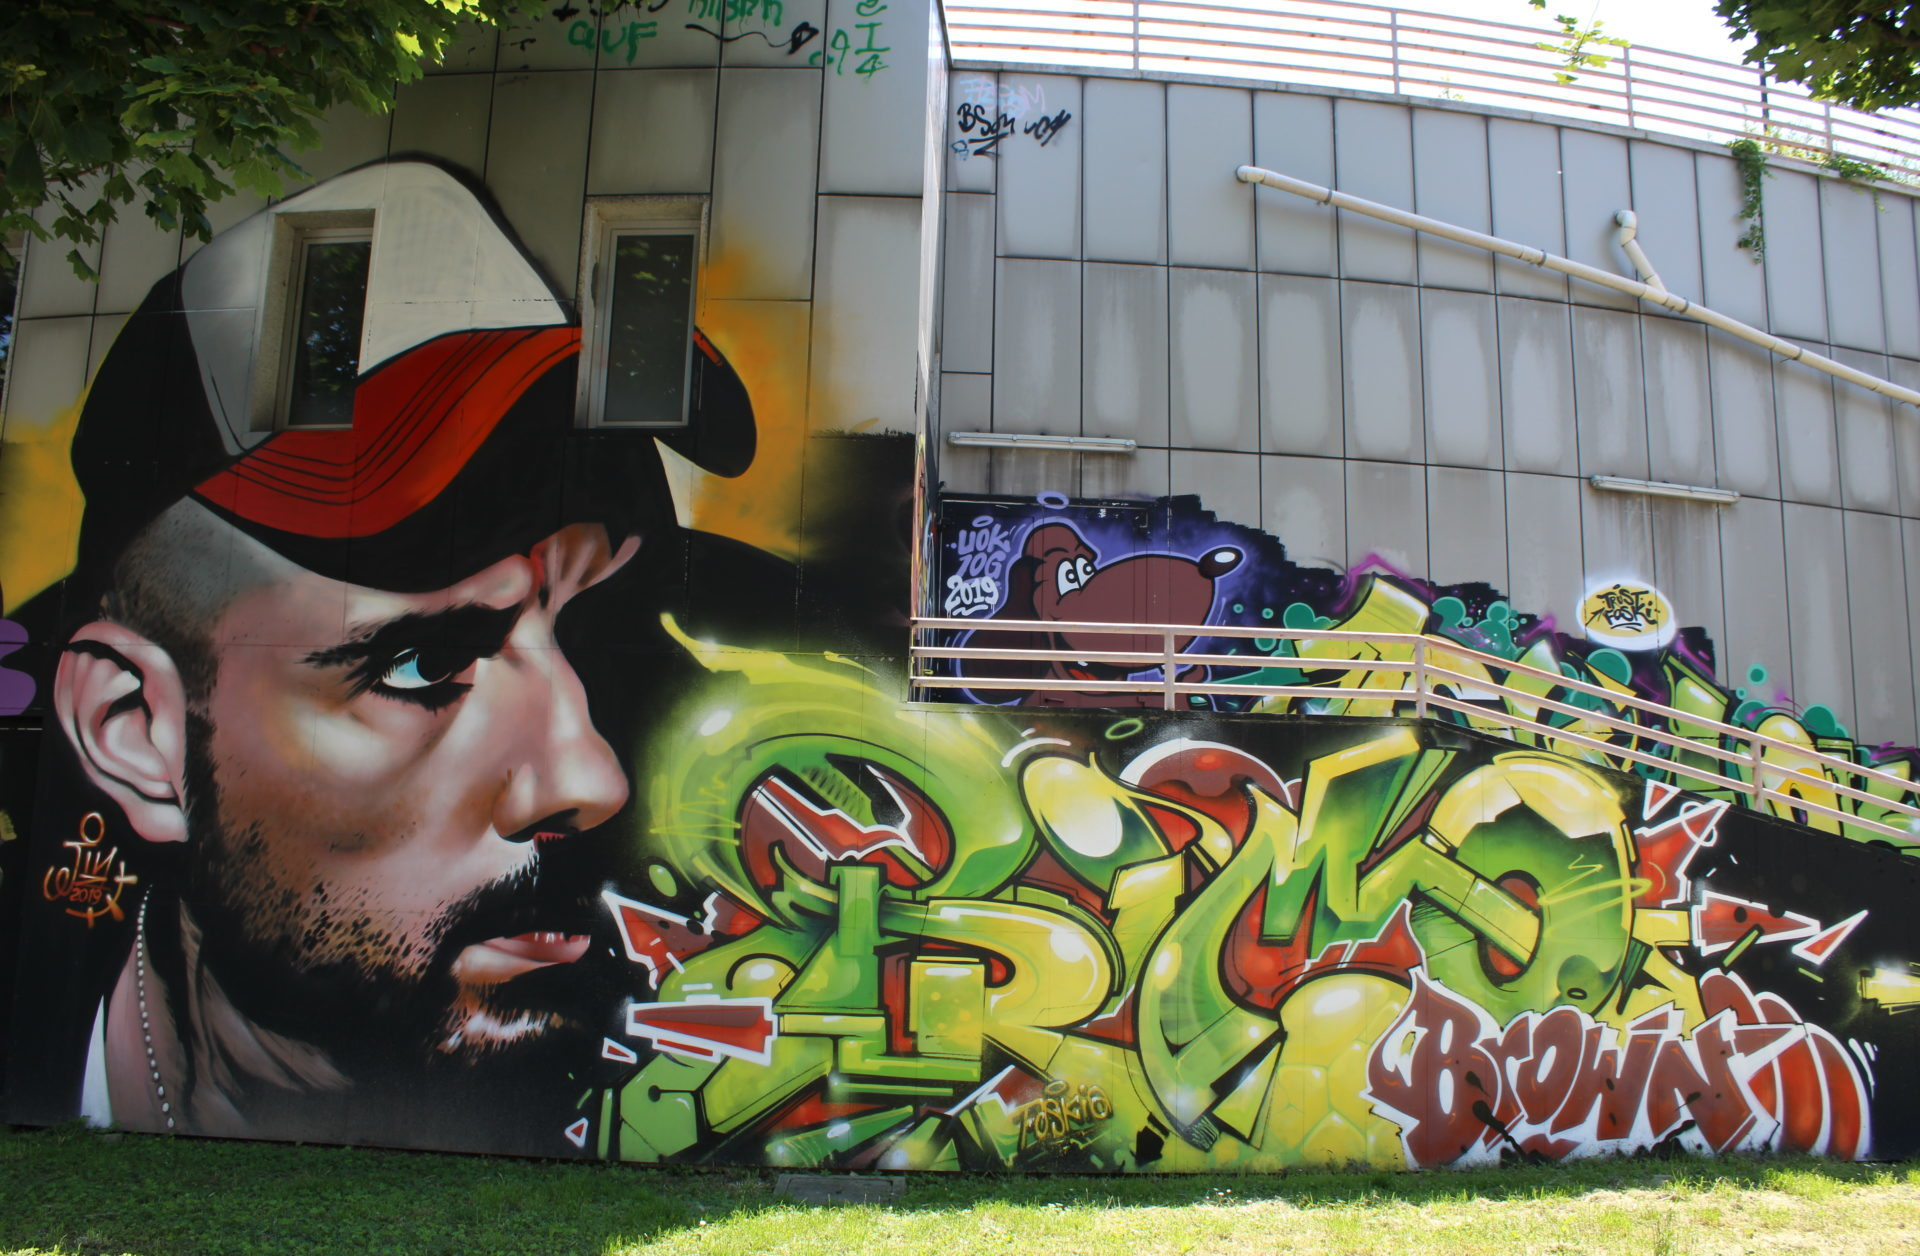 Primo Brown R.I.P. by Jin + Fosk